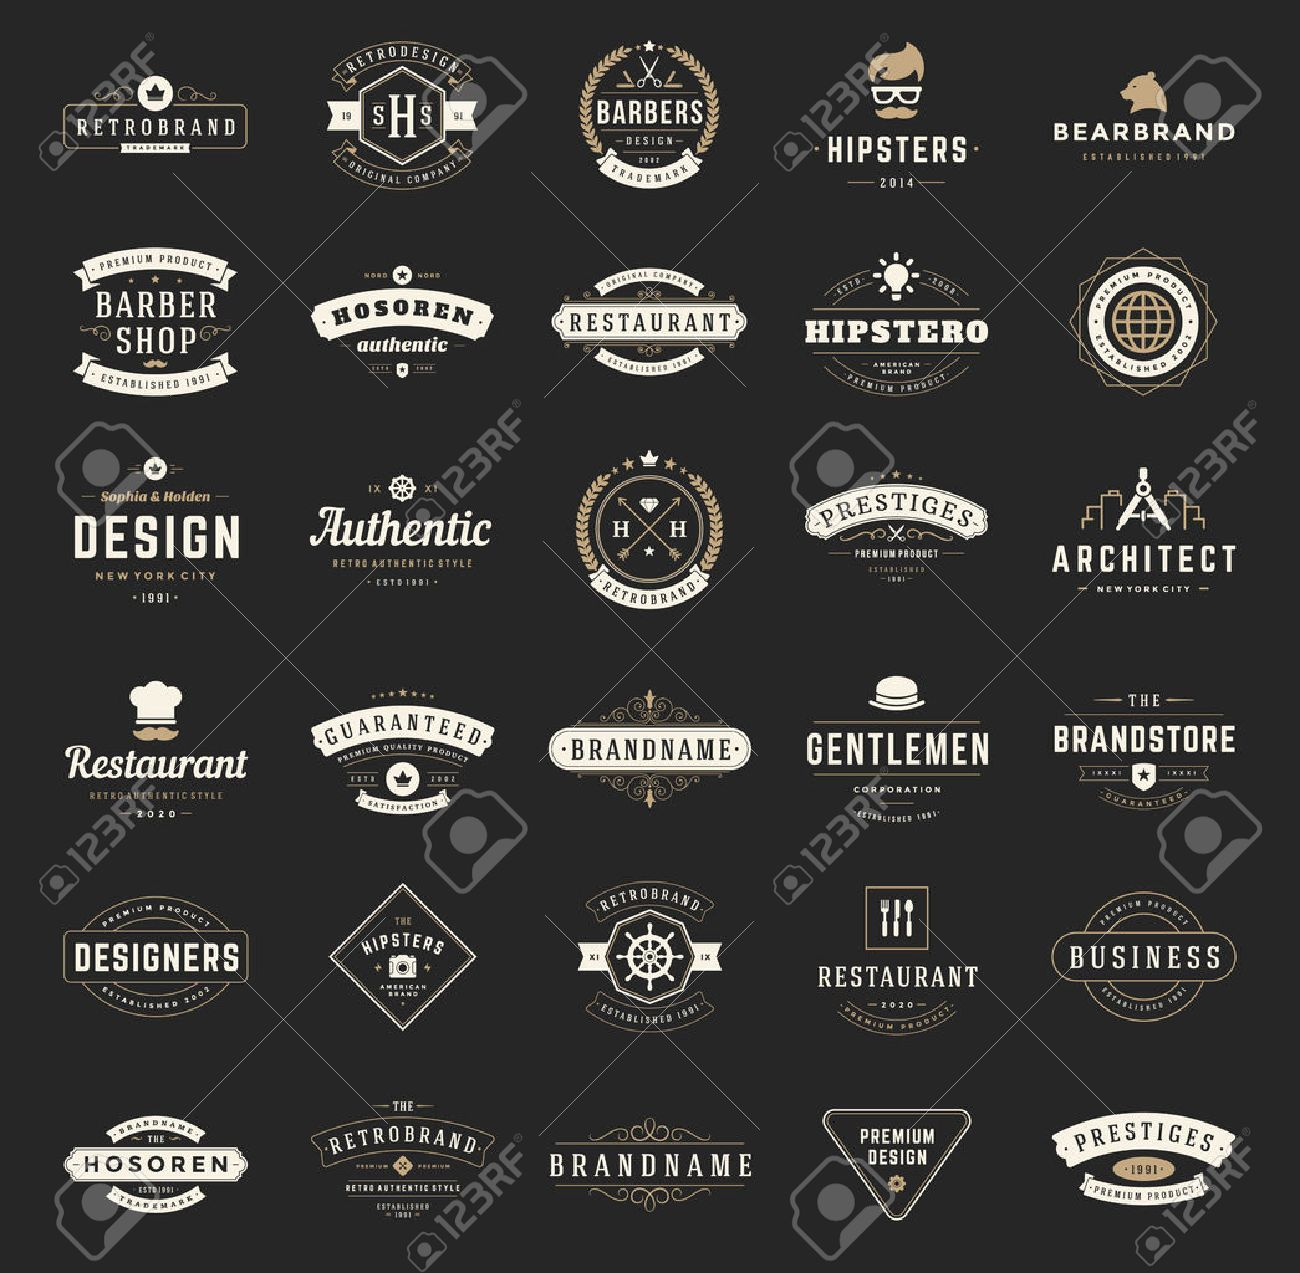 Retro Vintage Logotypes or insignias set. Vector design elements, business signs, logos, identity, labels, badges, shirts, ribbons and other branding objects. - 45877254